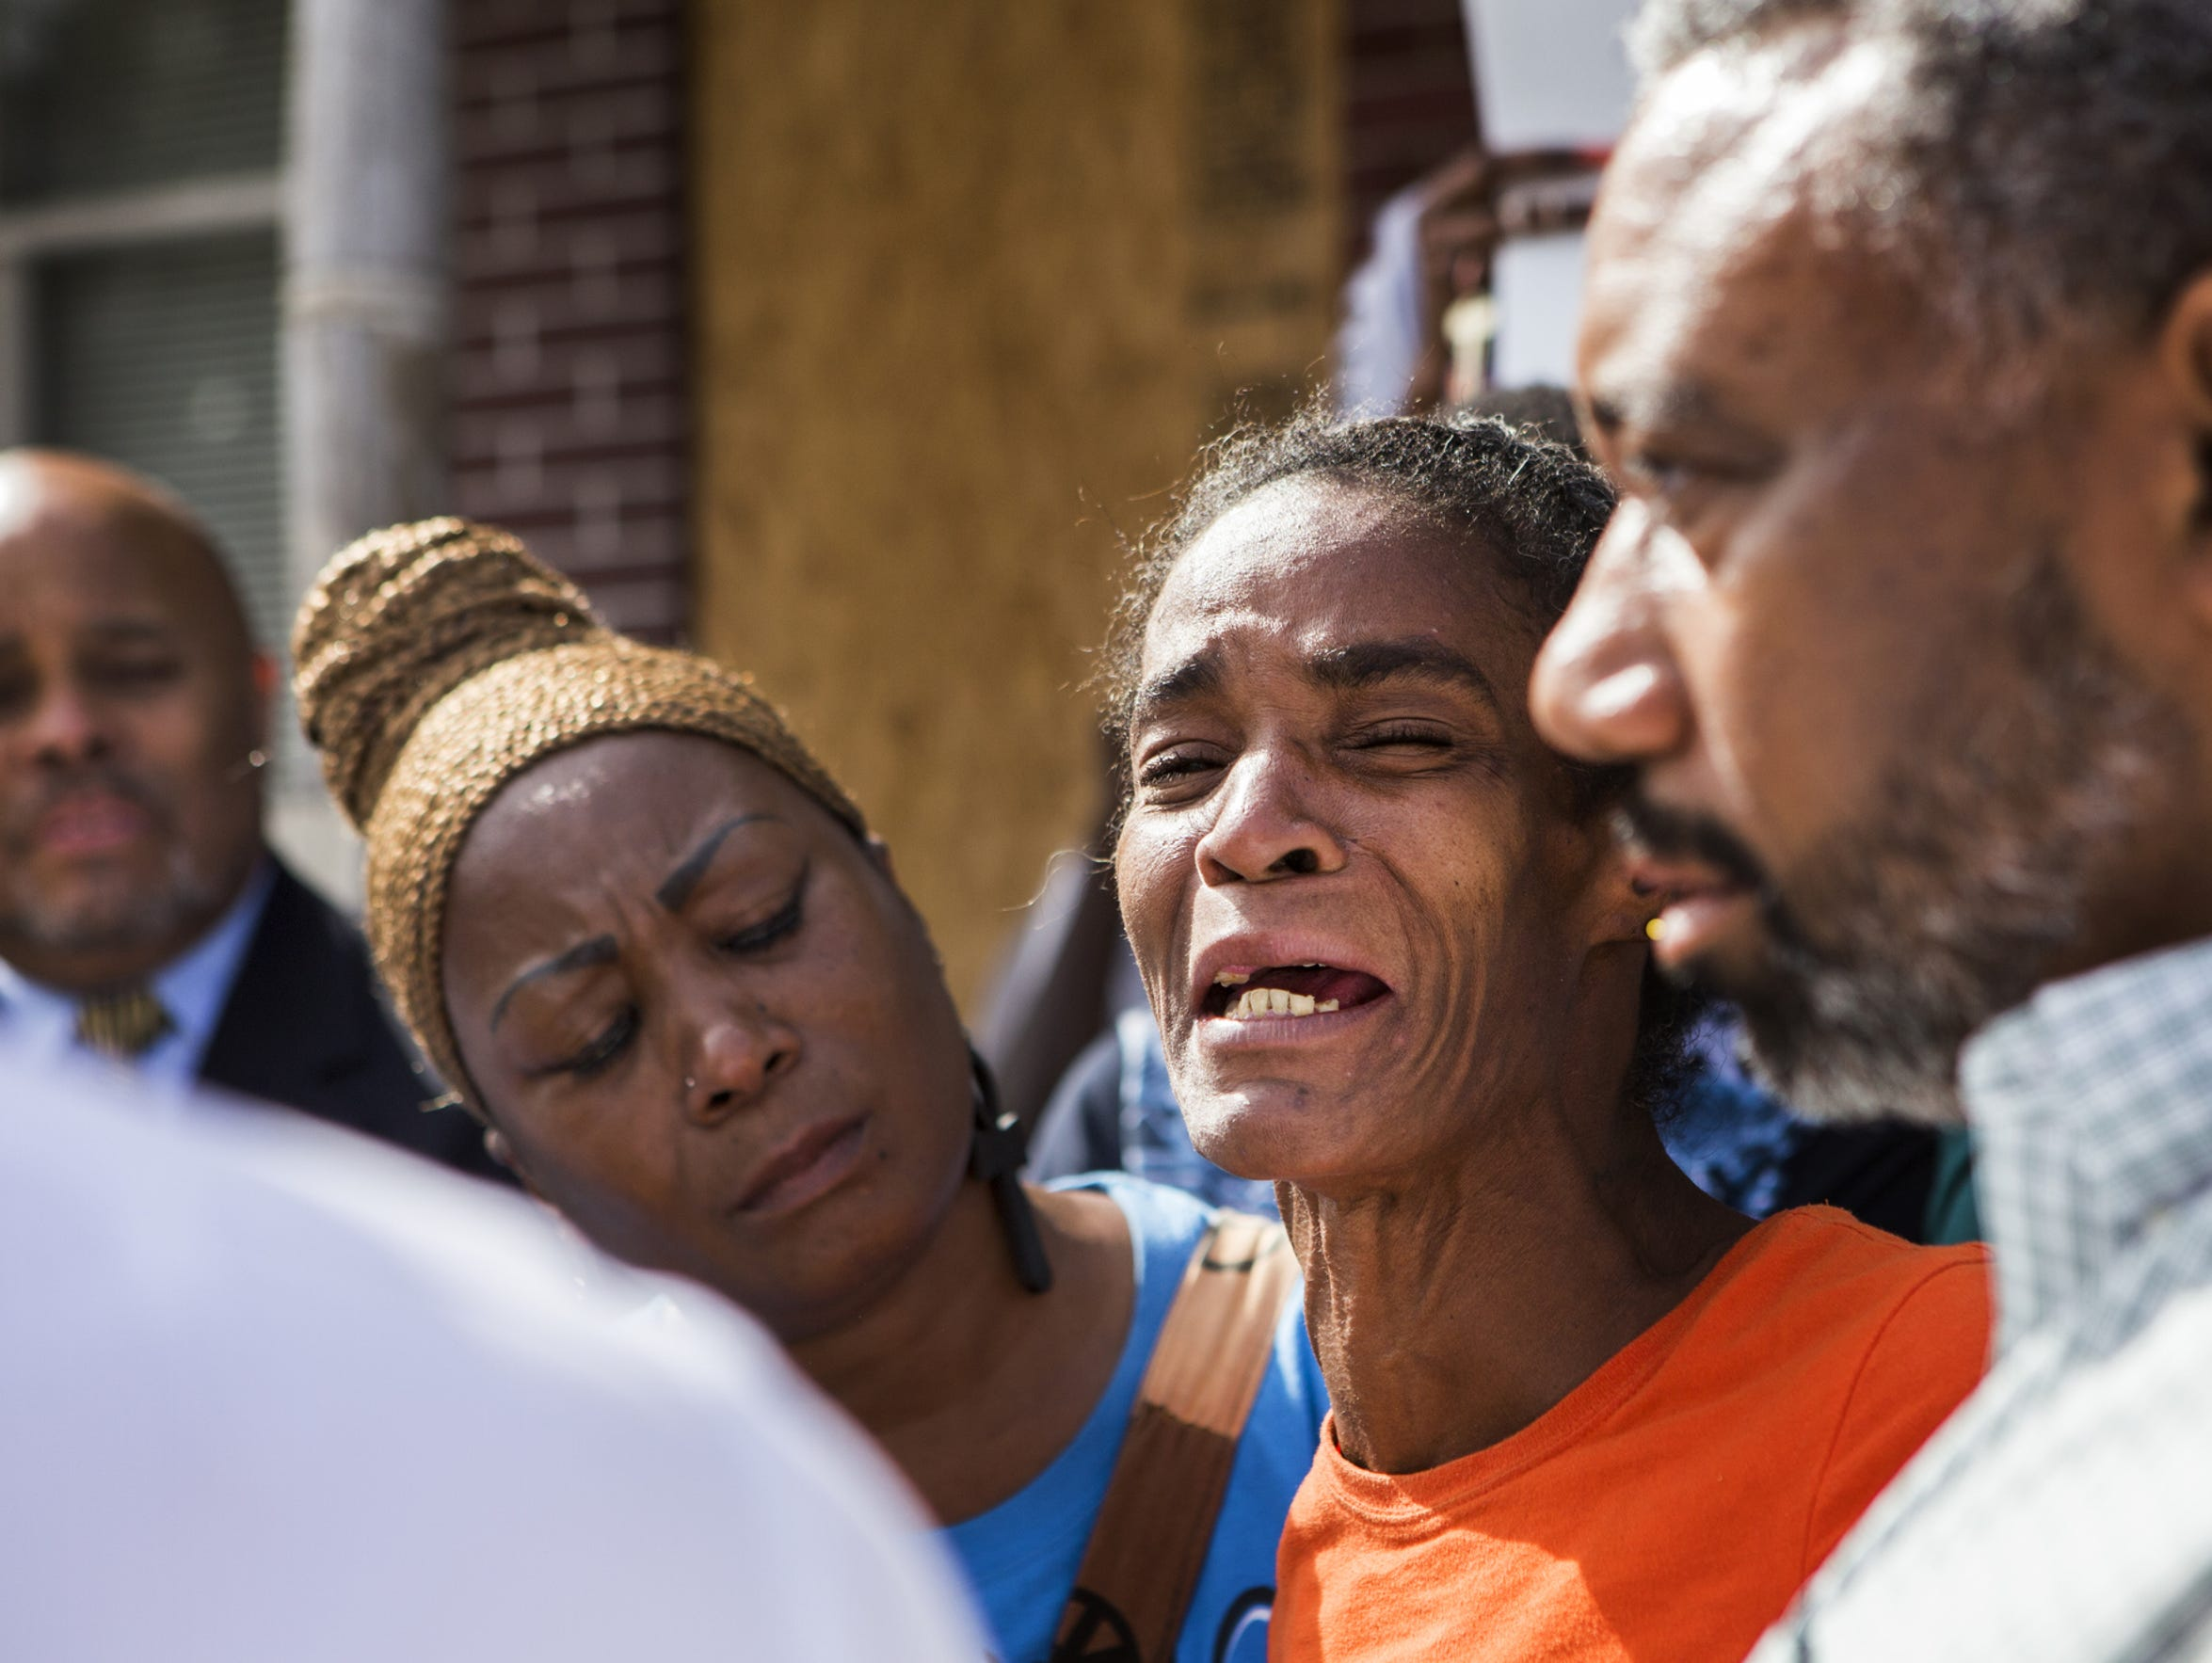 Phyllis McDole, mother of Jeremy McDole, describes